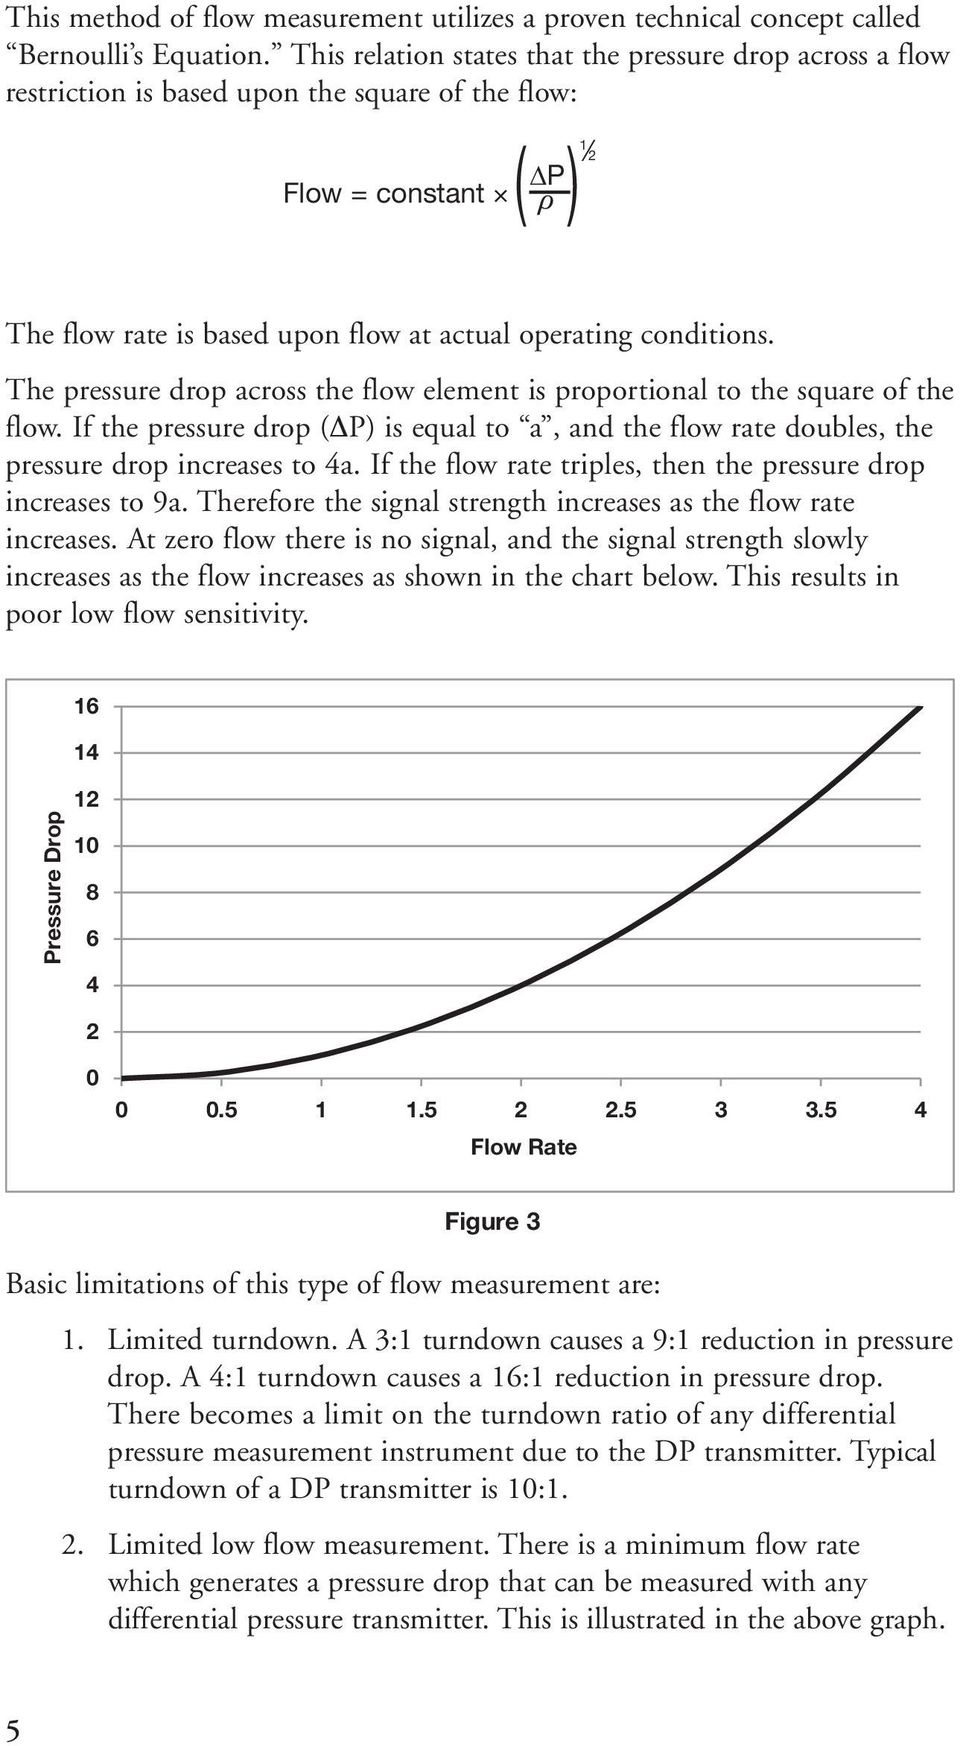 The pressure drop across the flow element is proportional to the square of the flow. If the pressure drop ( P) is equal to a, and the flow rate doubles, the pressure drop increases to 4a.